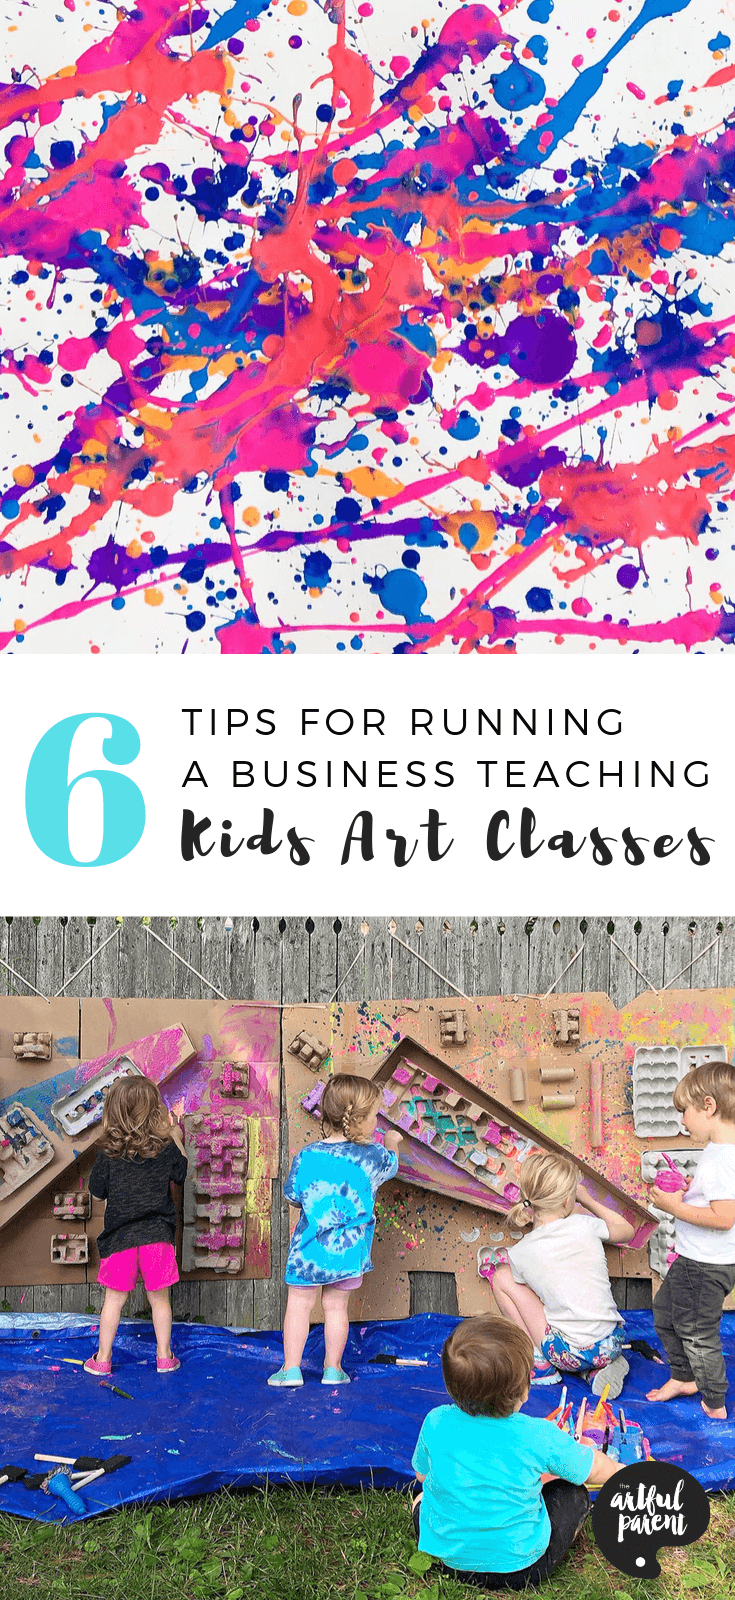 6 Tips for Running a Business Teaching Kids Art Classes